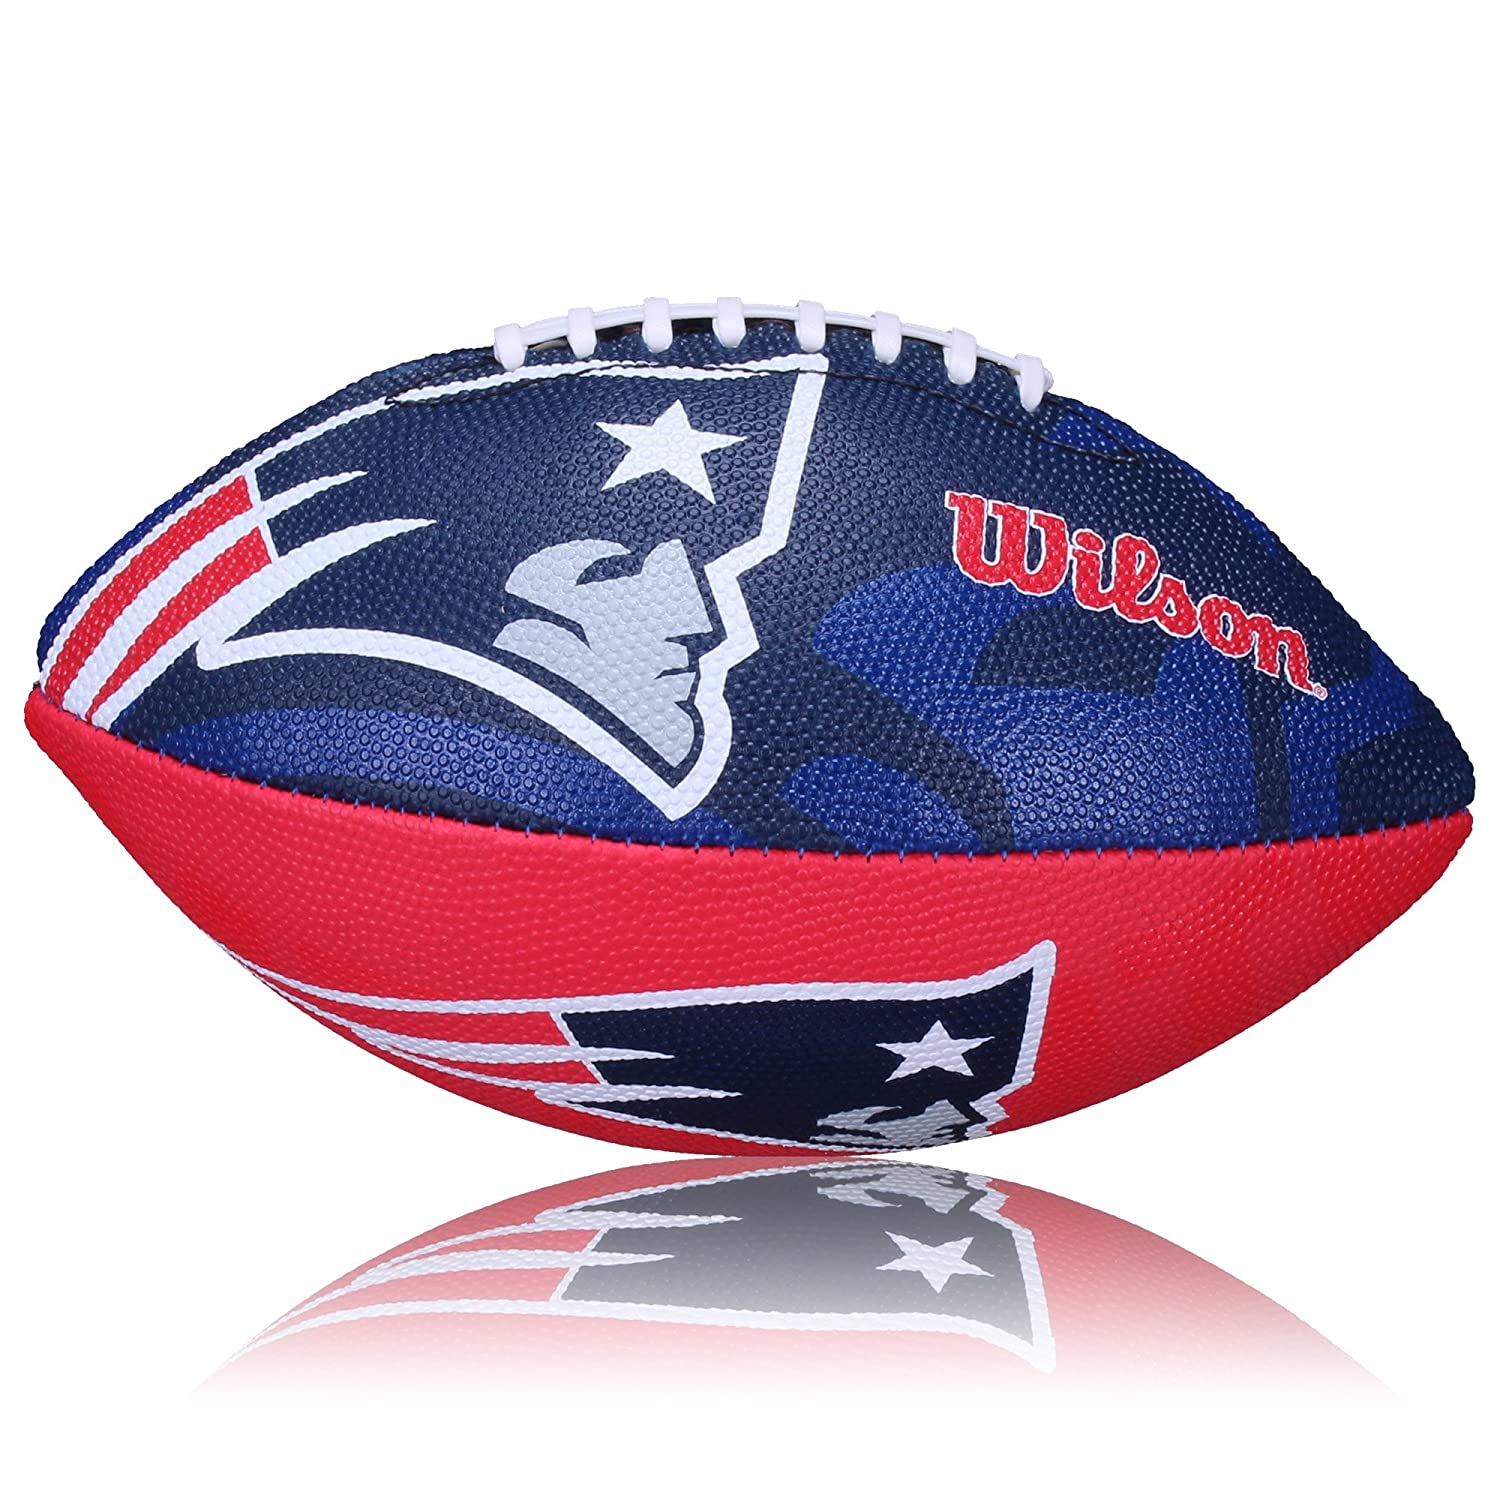 Wilson Football NFL Patriots Logo, Royal/blanco, junior, wl0206193140